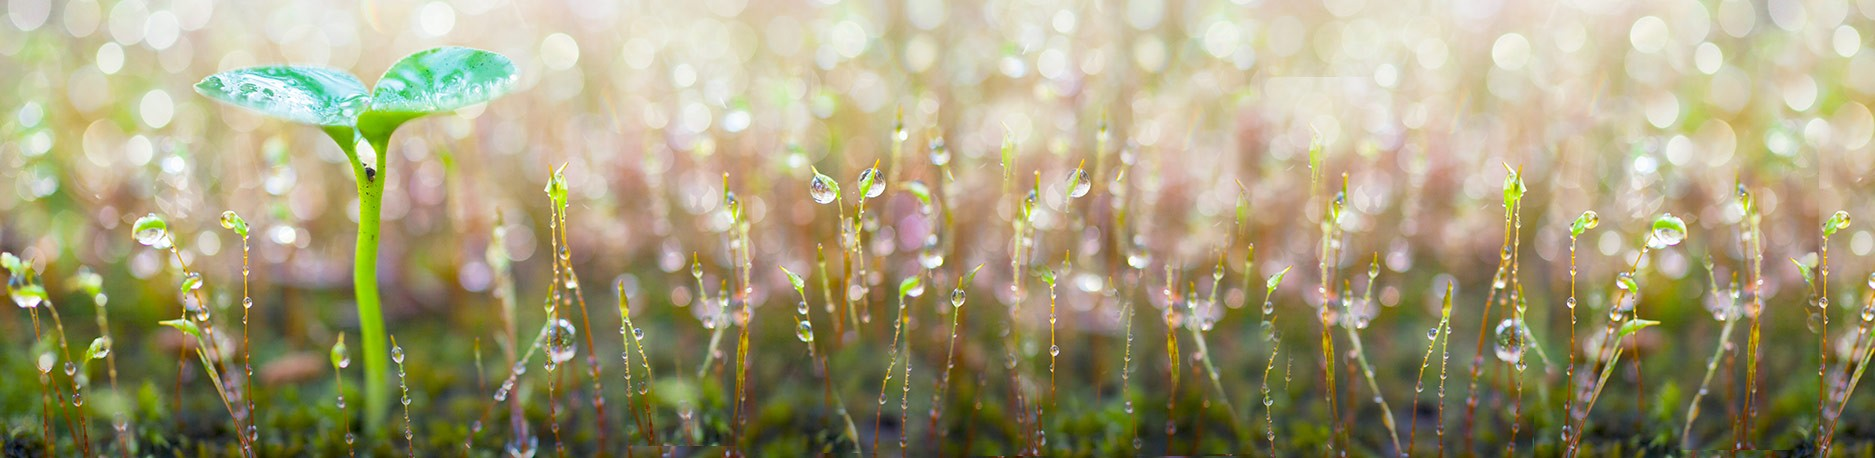 April Showers Bring May Flowers: The Importance of Measuring Rainfall in Your Area